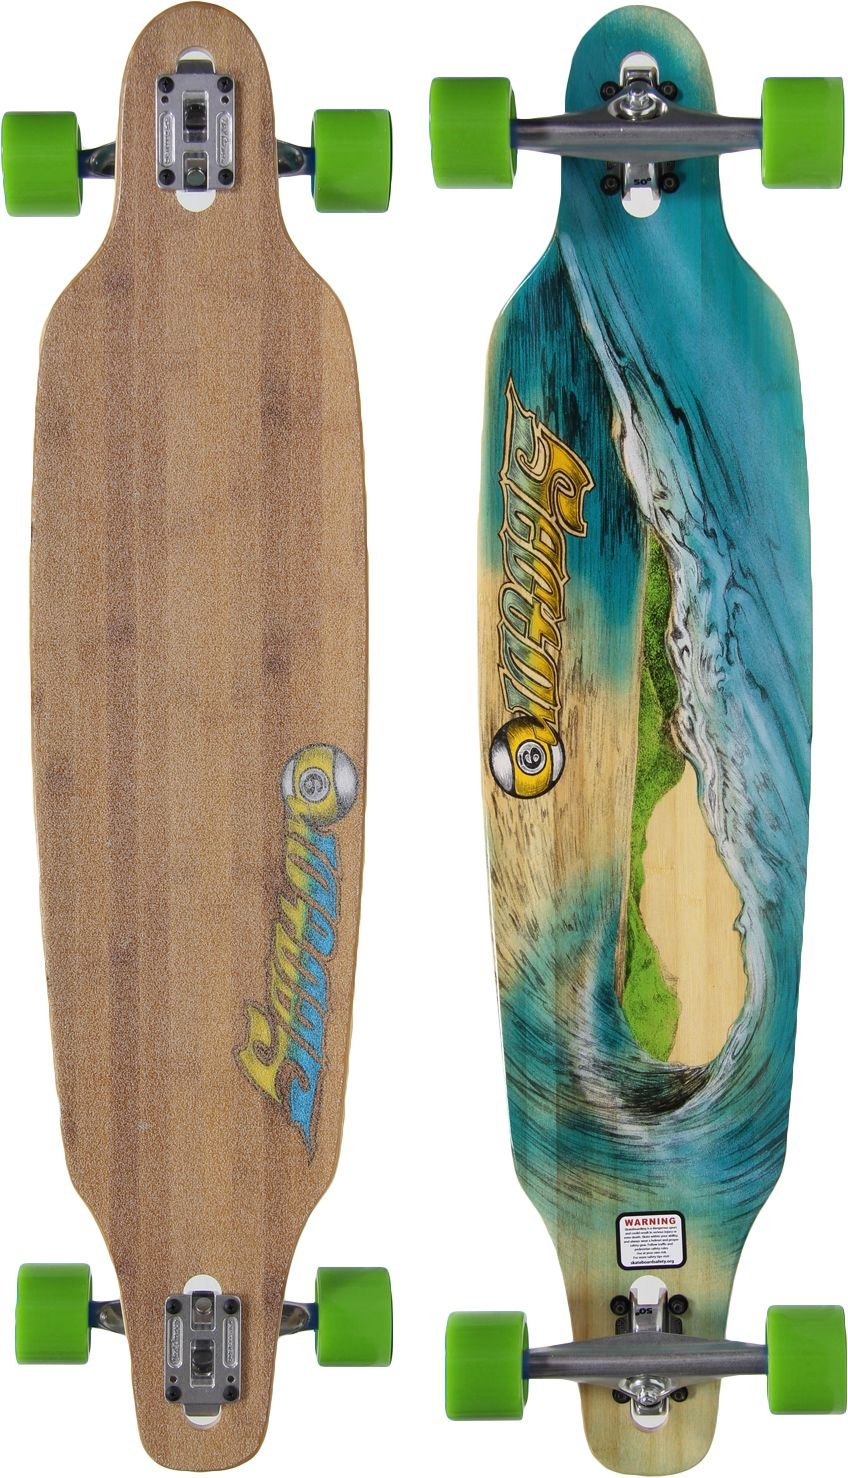 Sector 9 Blue Wave Lookout dropthrough Complete Longboard Skateboard, 9.6-Inch x 42.0-Inch by Sector 9